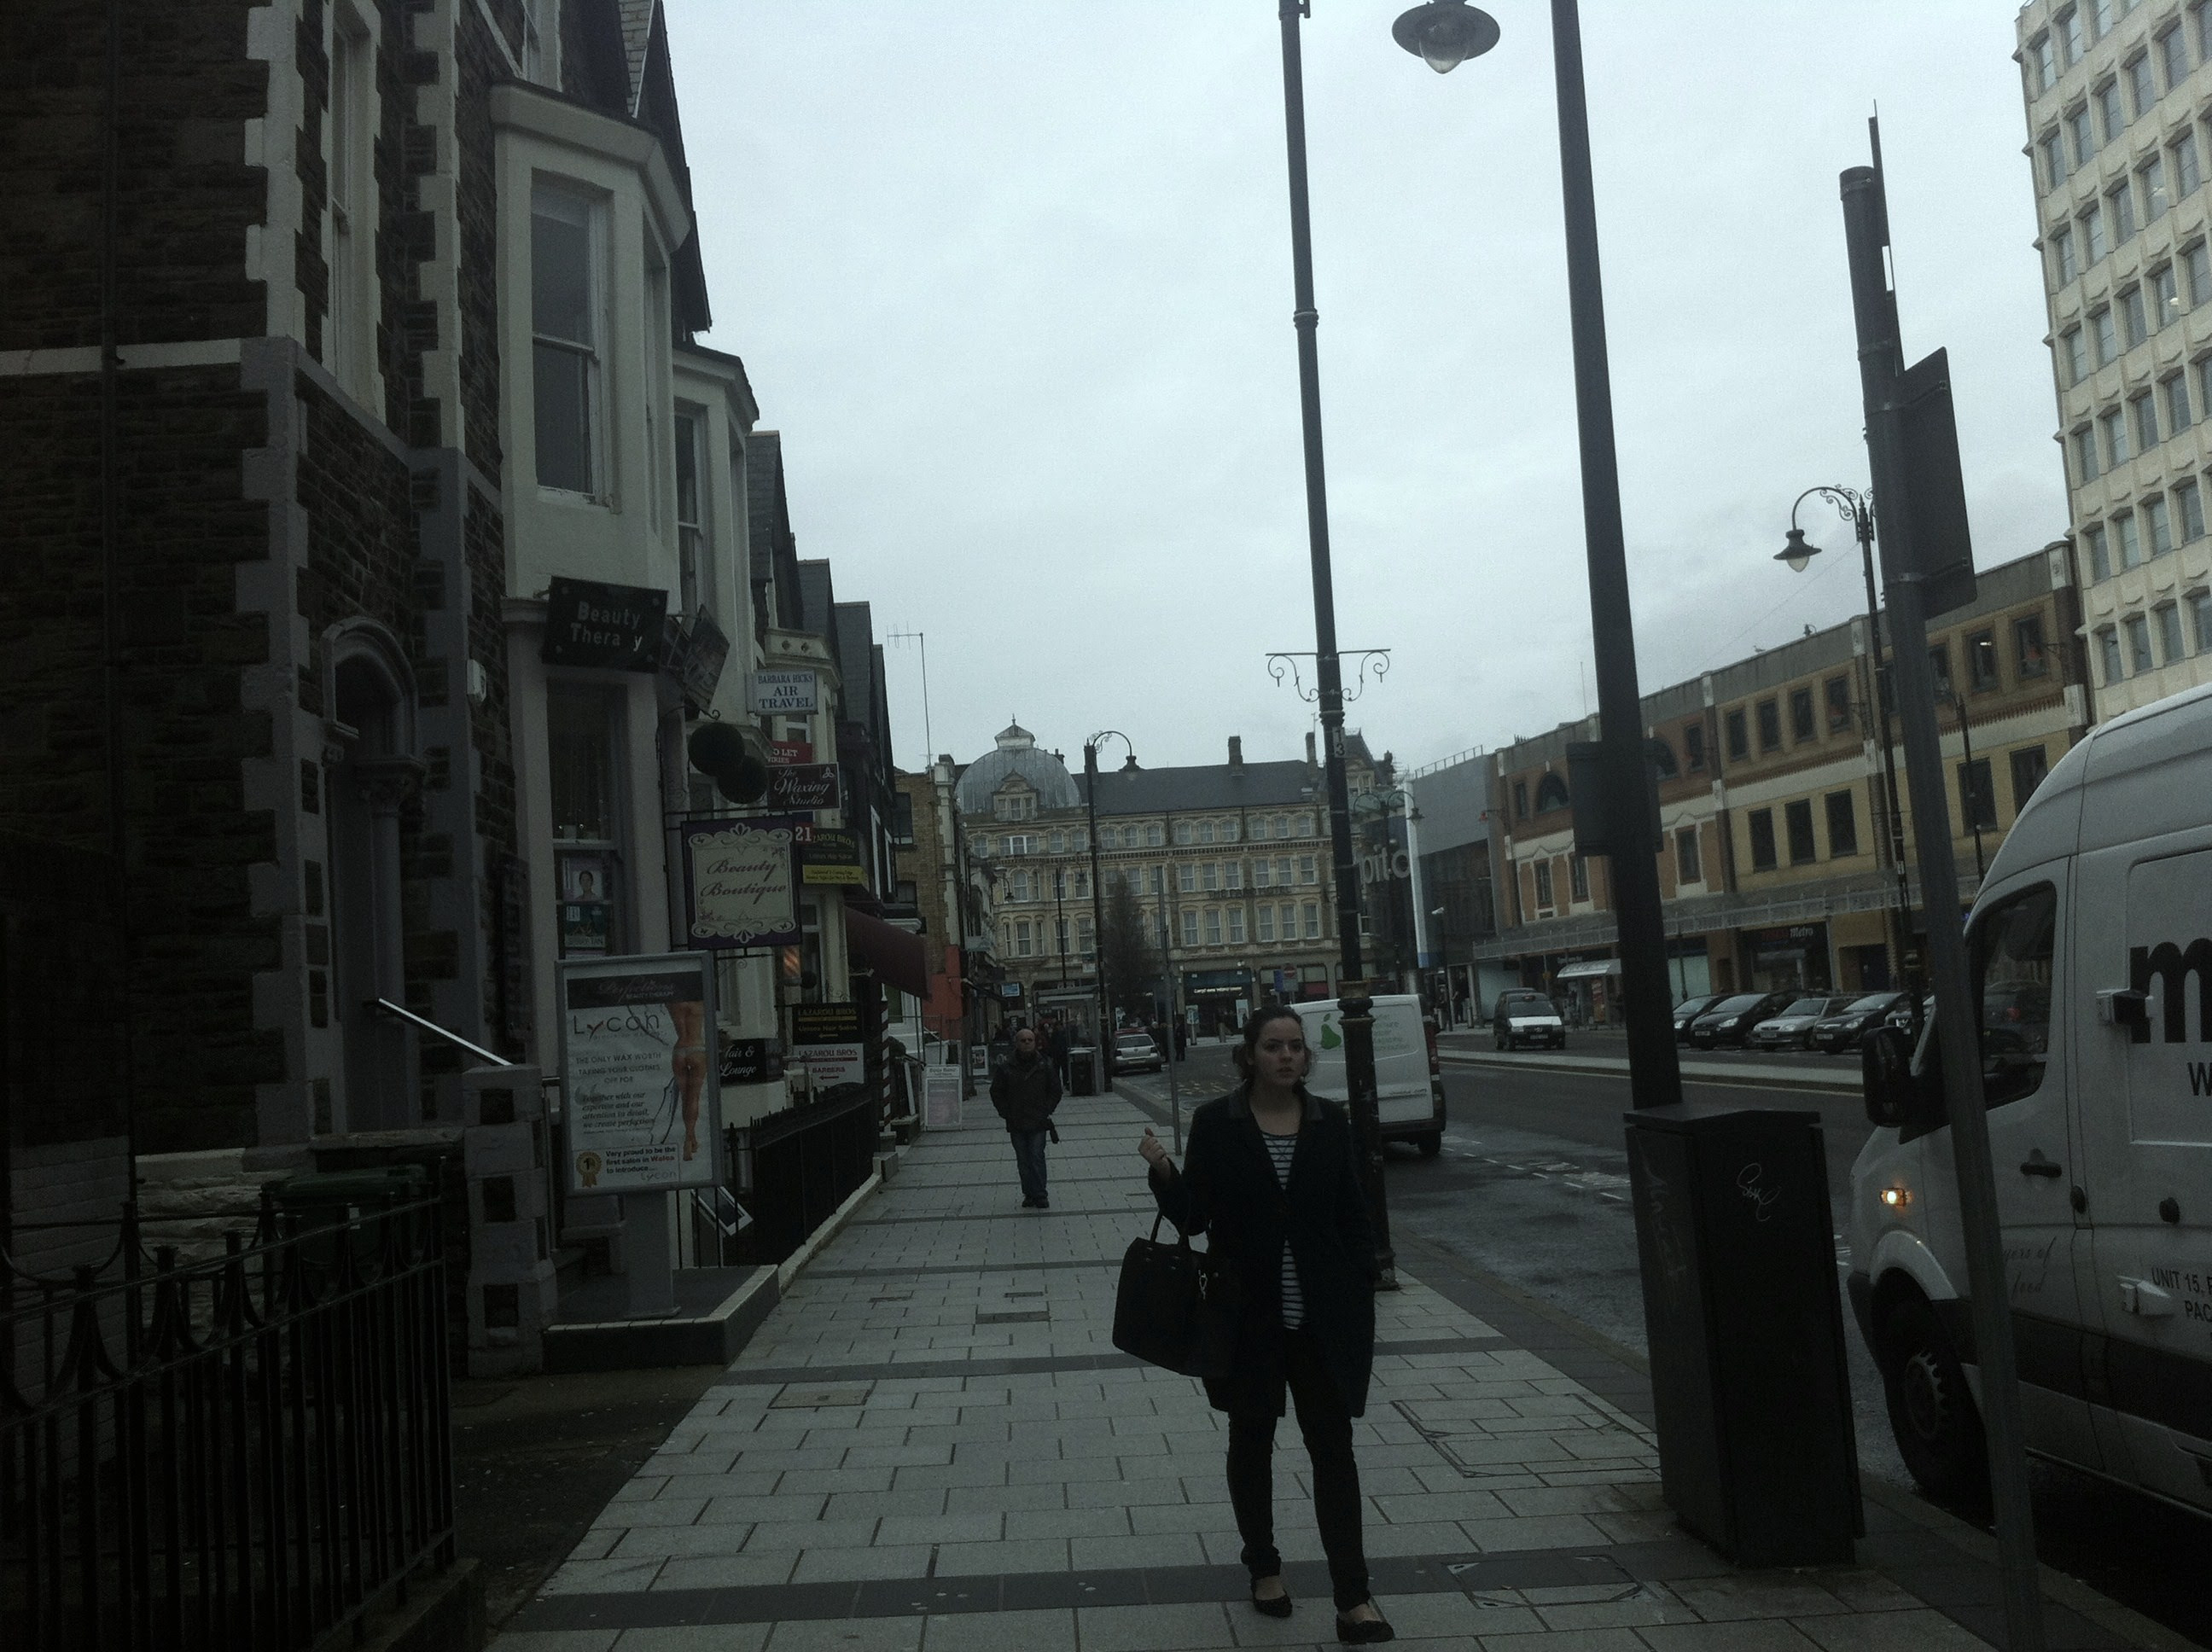 A very common looking street, very British. There are some cool spas and restaurants in this area of town